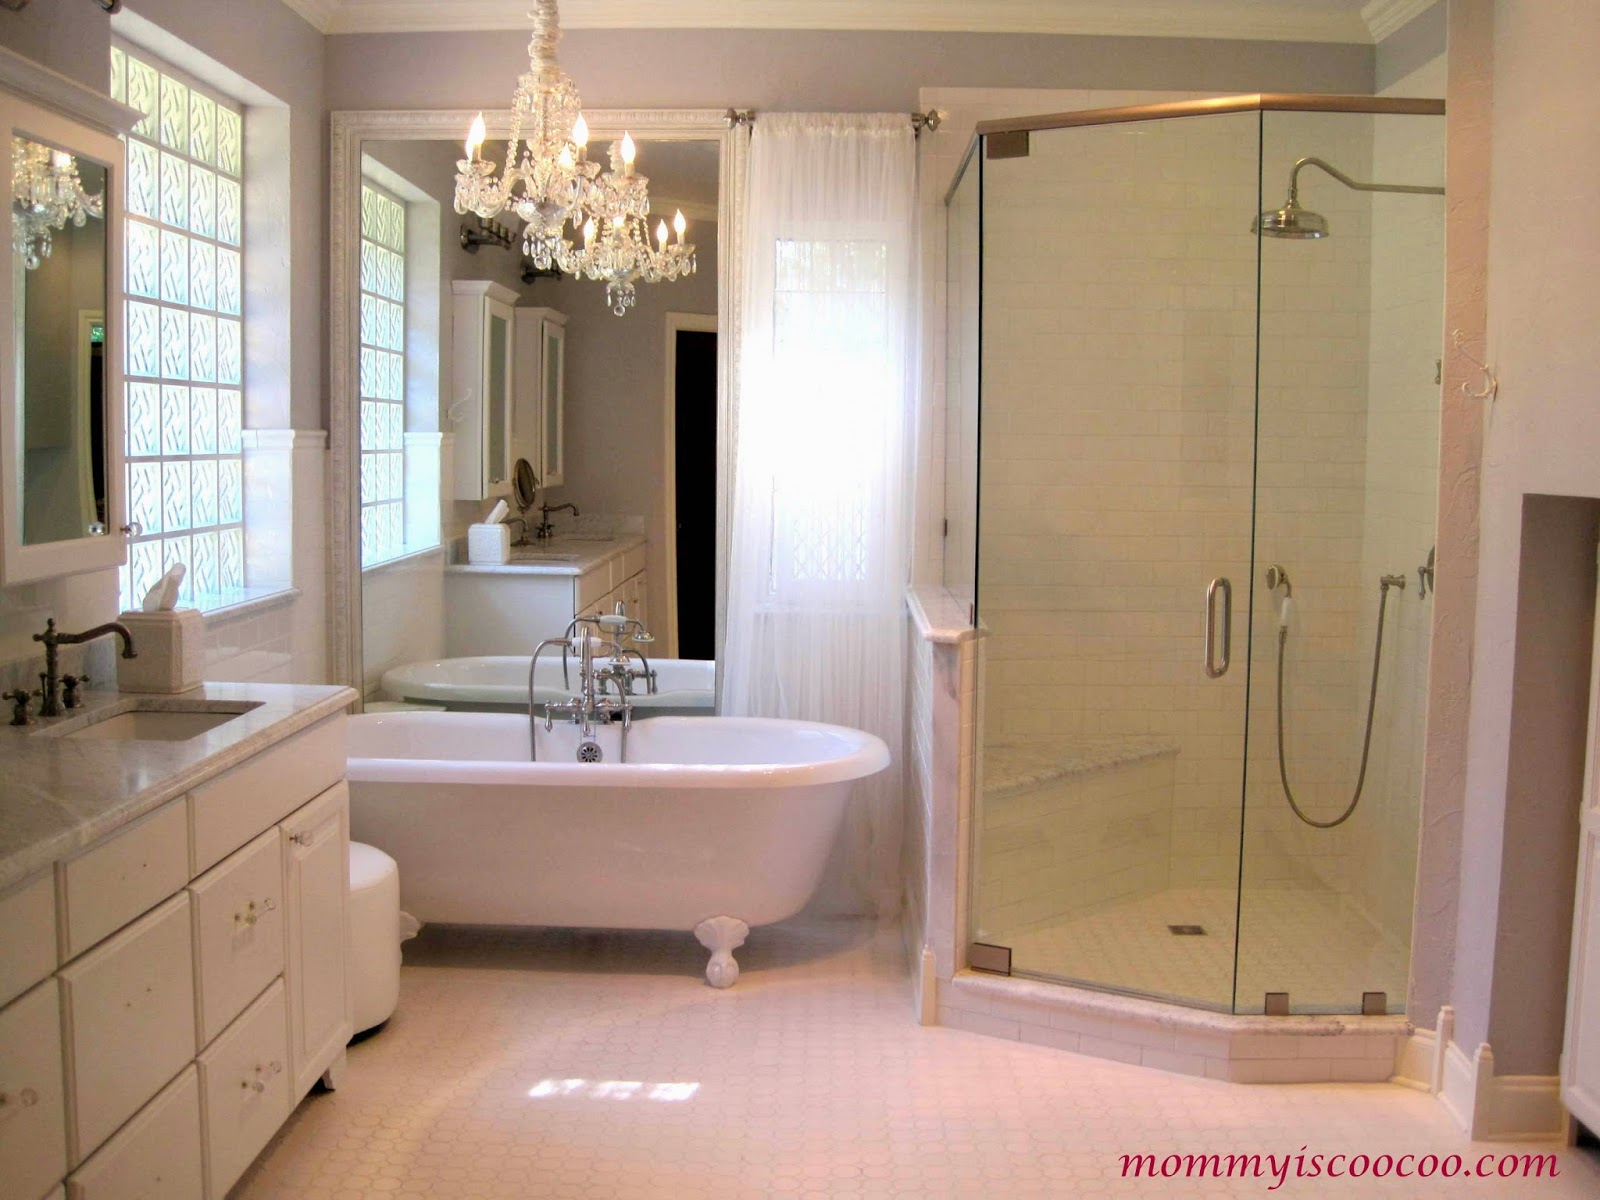 Bathroom Mirror Removal remodelaholic | how to remove (and reuse) a large builder grade mirror